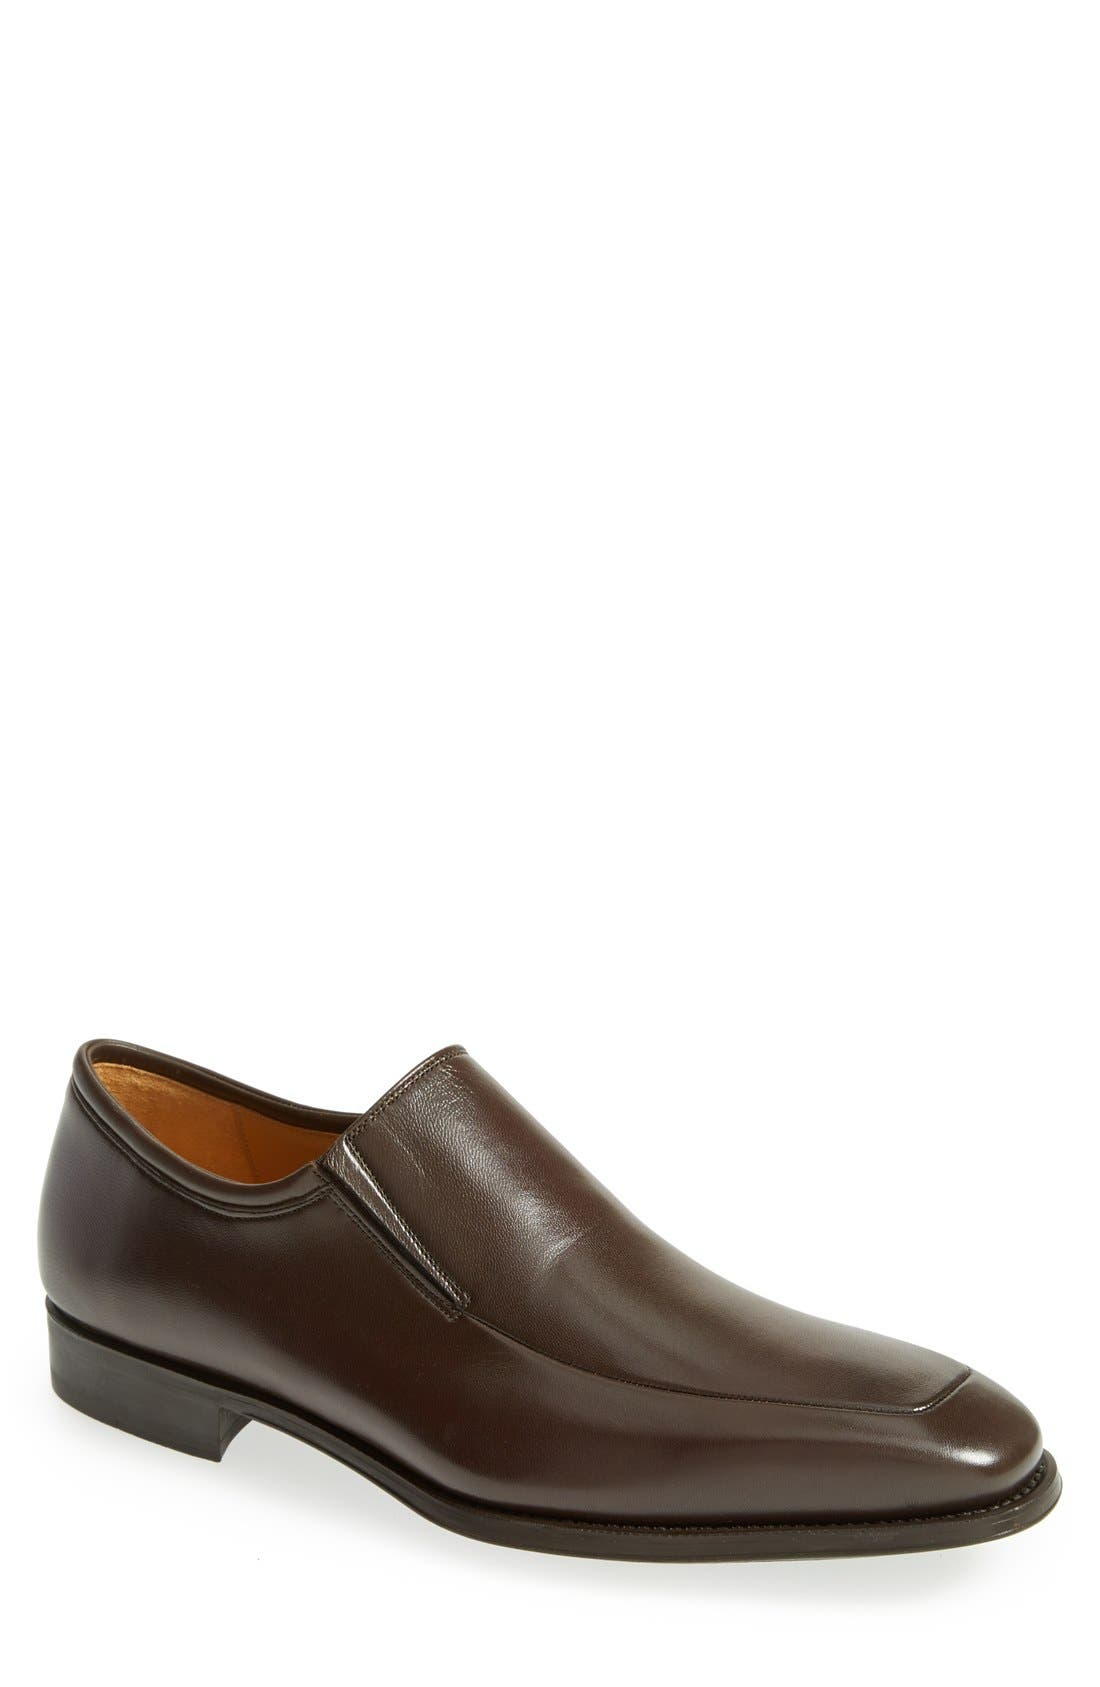 Alternate Image 1 Selected - Magnanni 'Dominguez' Slip-On